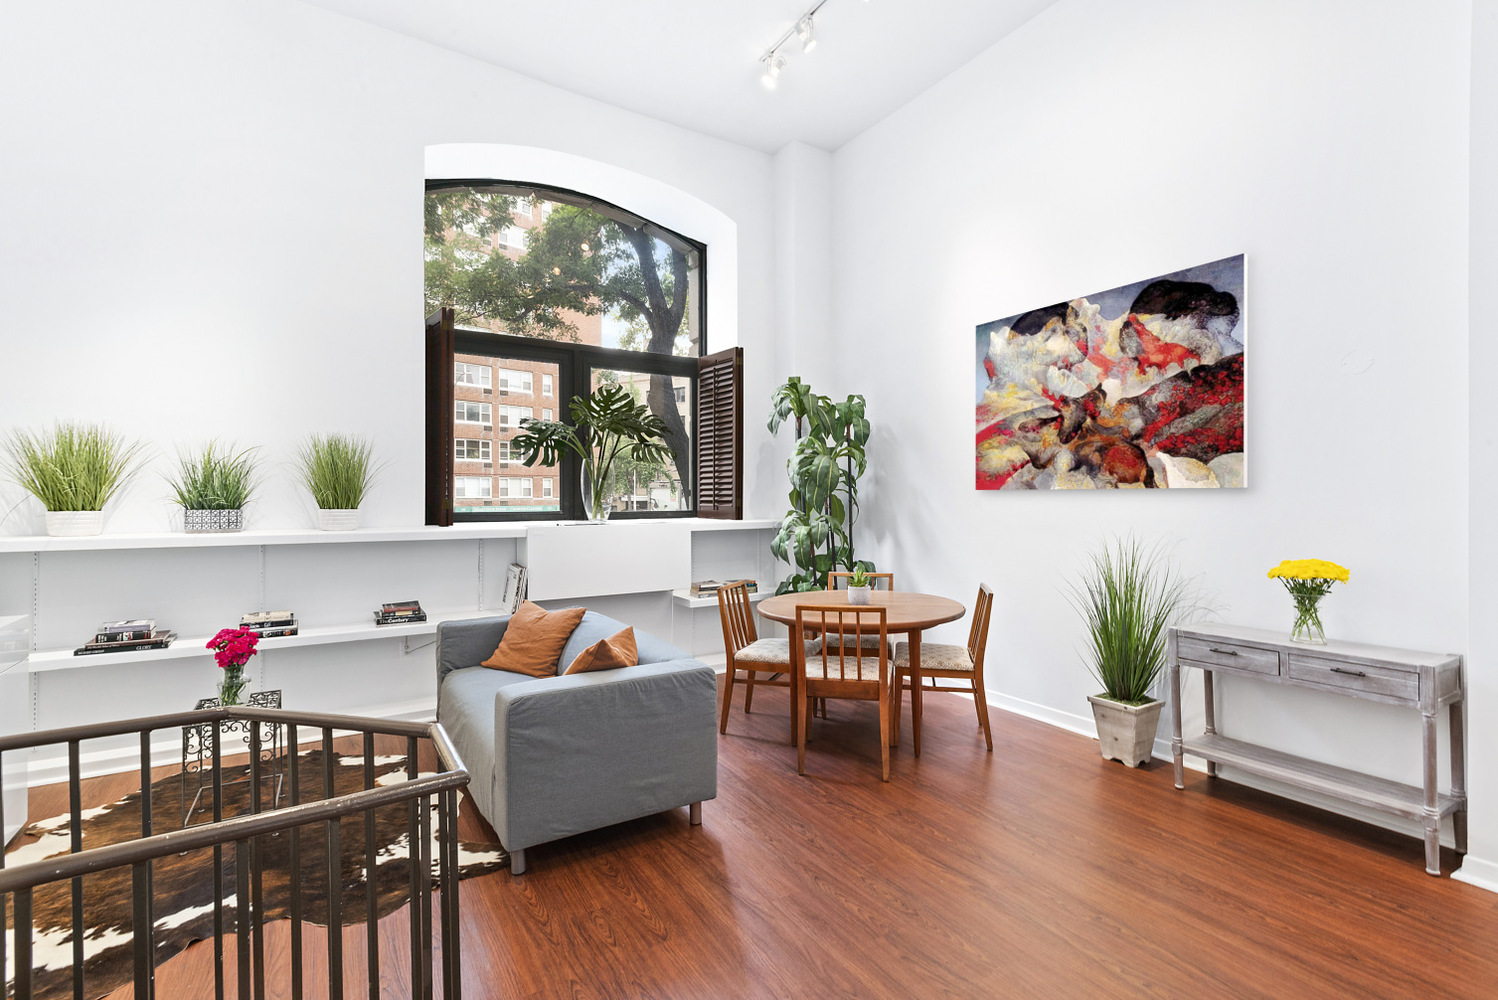 196 6th Avenue, Unit 1B Manhattan, NY 10013